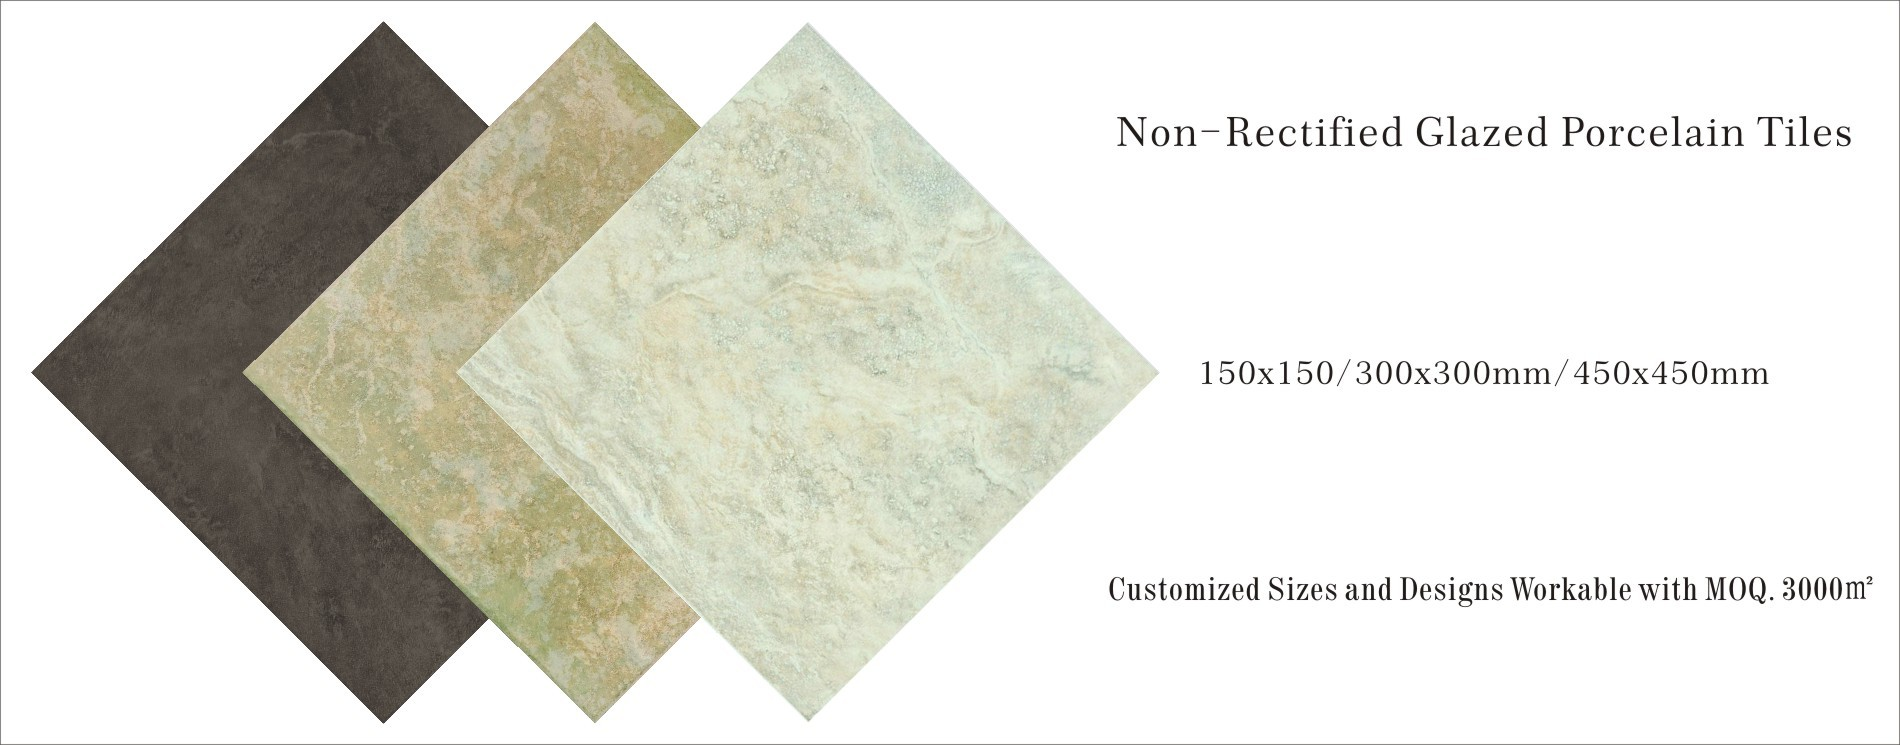 Non-rectified Glazed Porcelain